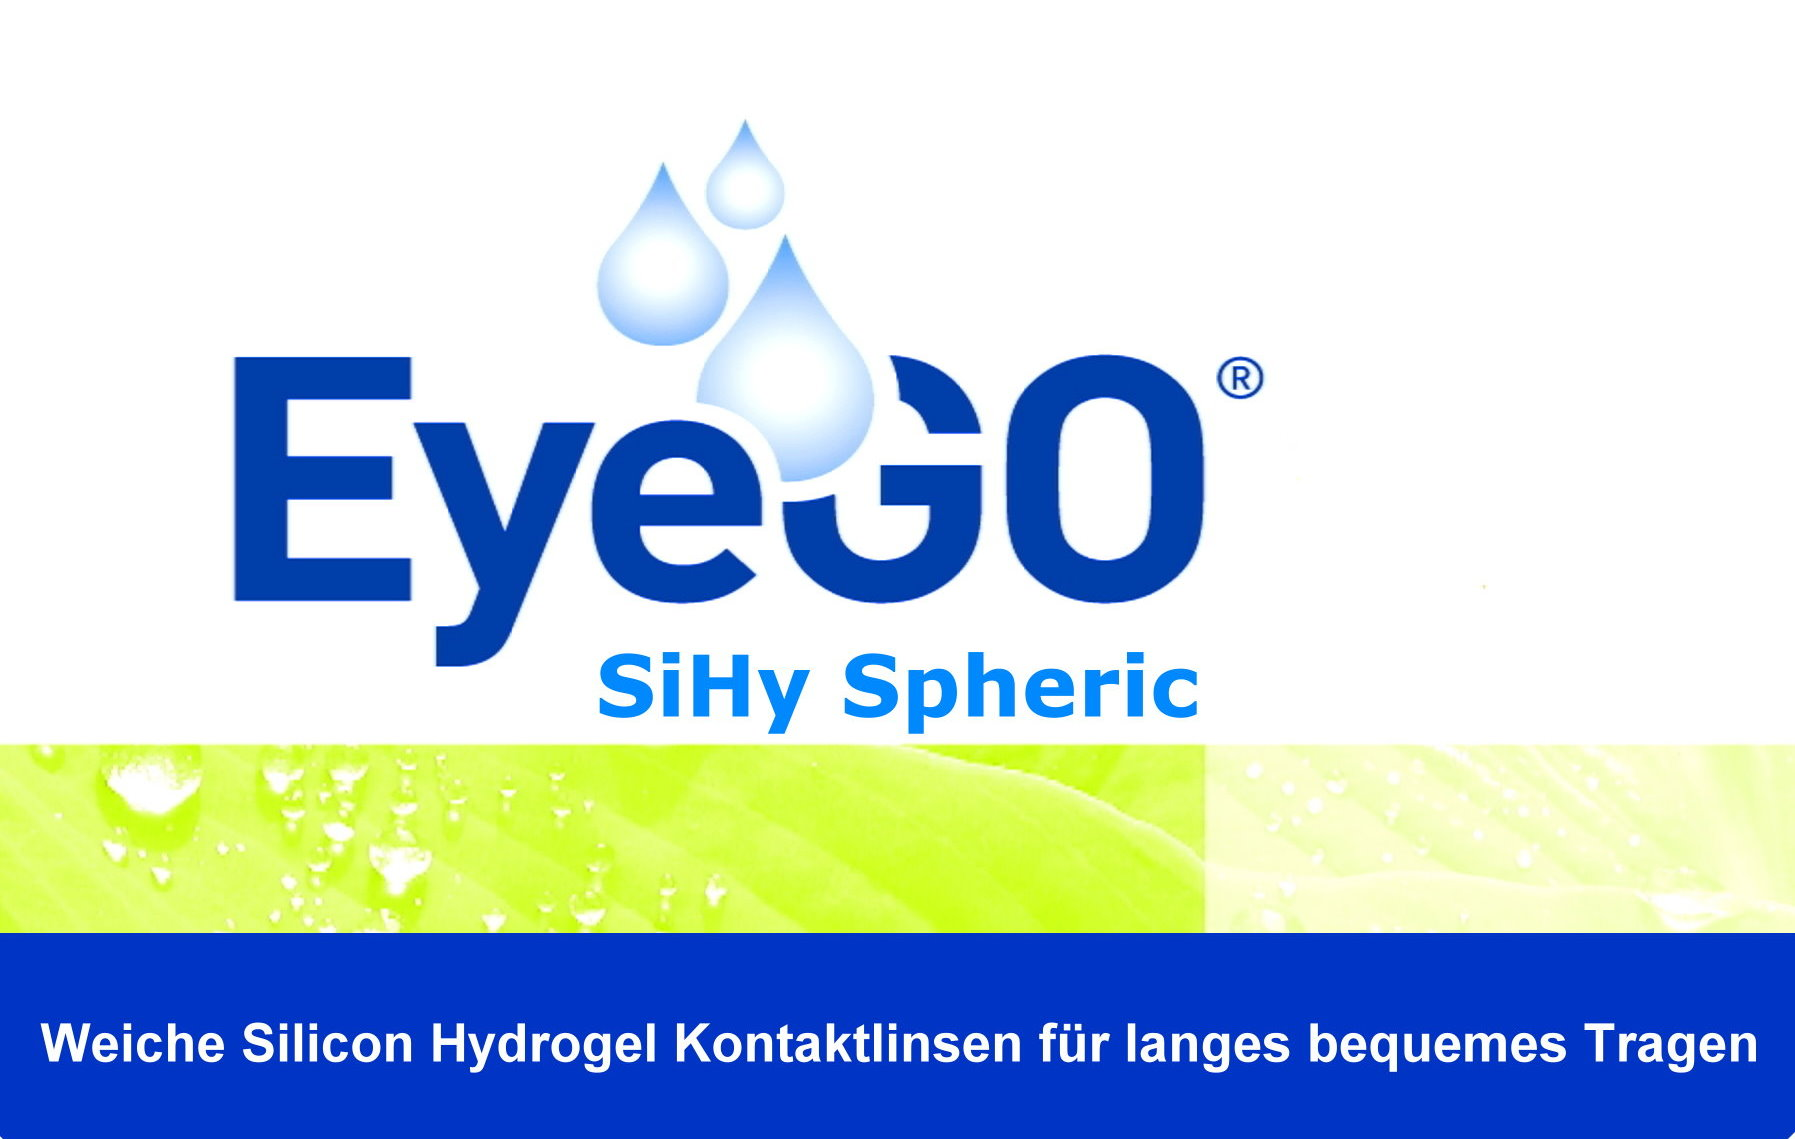 2-monthly_EyeGO_Label_SiHy